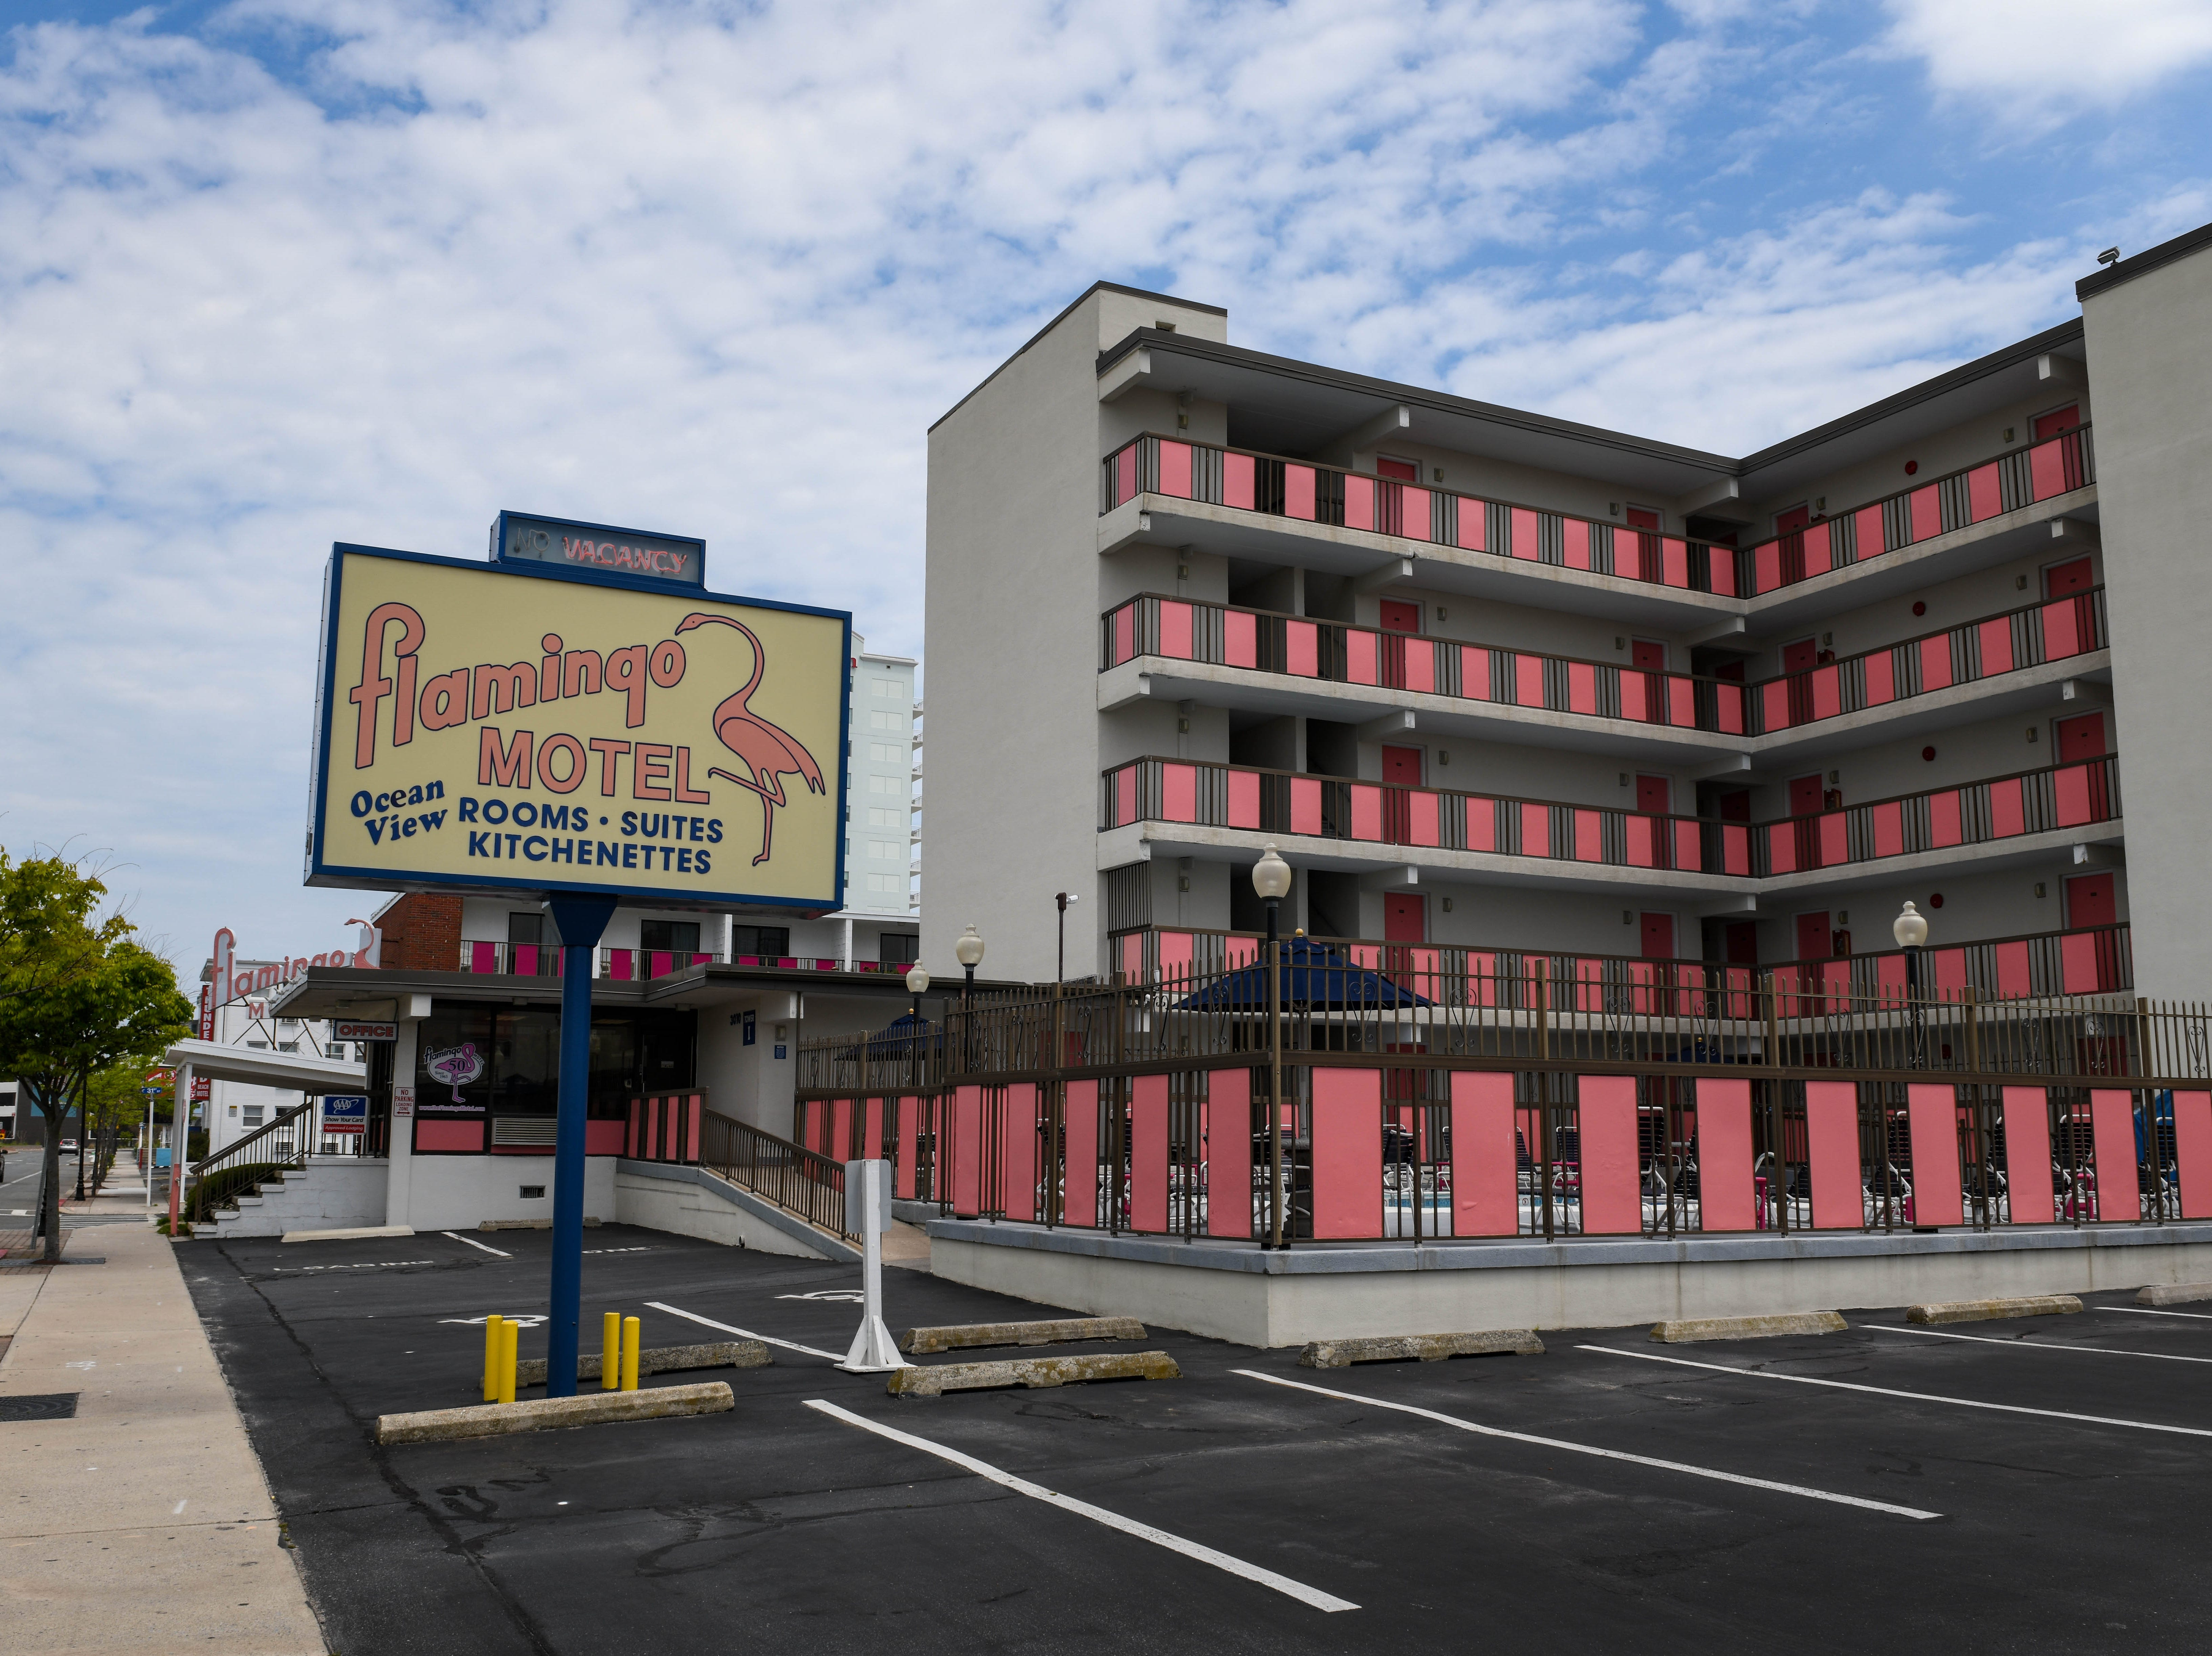 Ocean City's Flamingo Motel sits quiet before peak tourist season on May 8, 2019. The family-owned establishment has been split up in the recent sale.